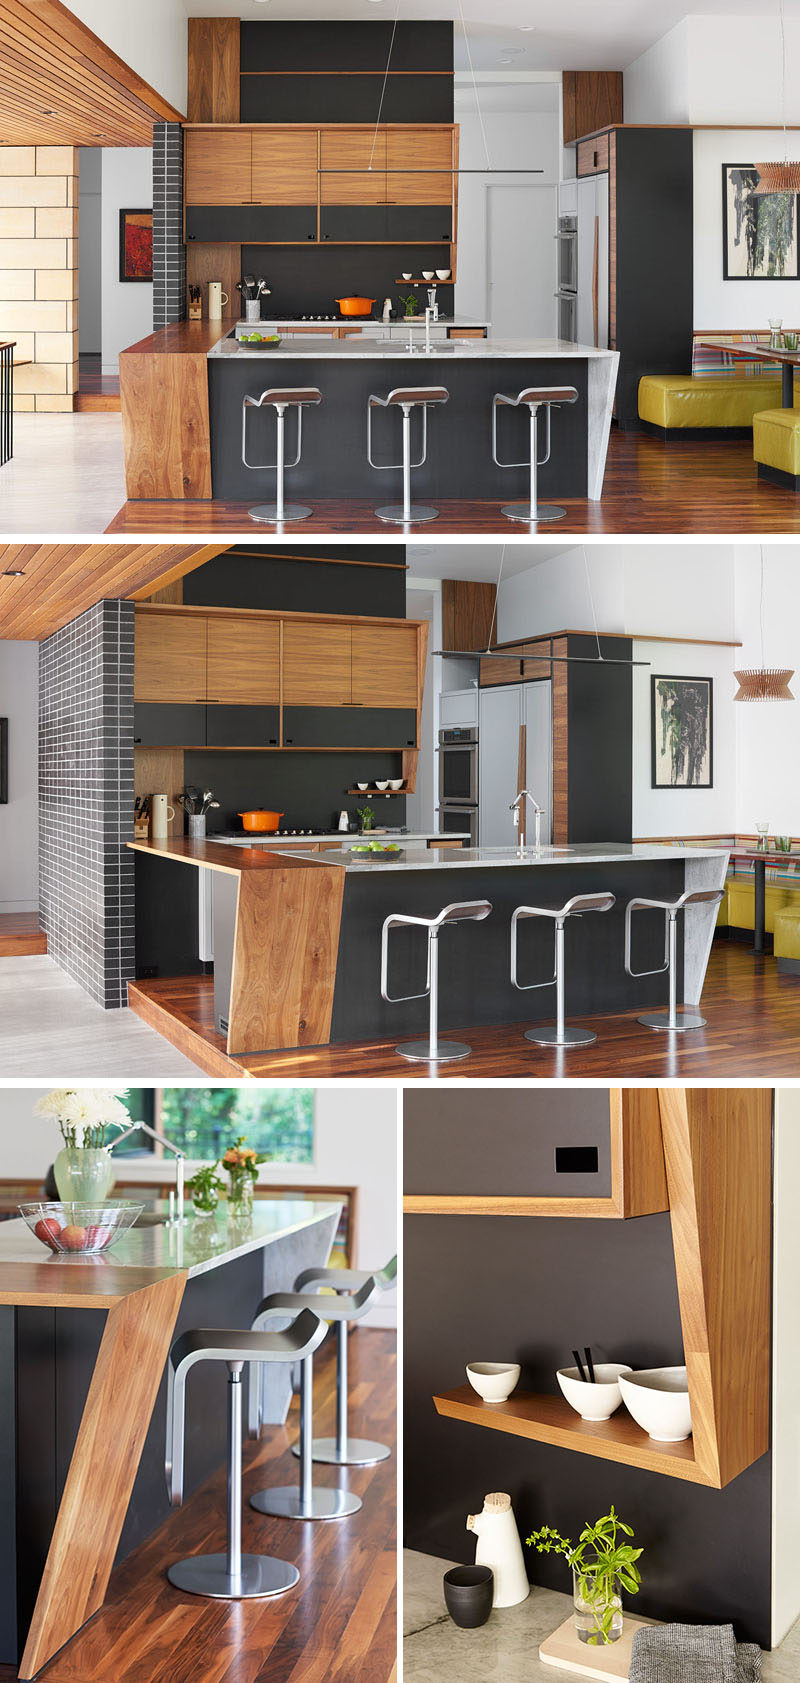 In this modern kitchen, wood and white cabinets and counters are combined with black elements for a sophisticated modern appearance. Off to the right of the kitchen is a dining booth with lime green and patterned banquette seating. #ModernKitchen #KitchenDesign